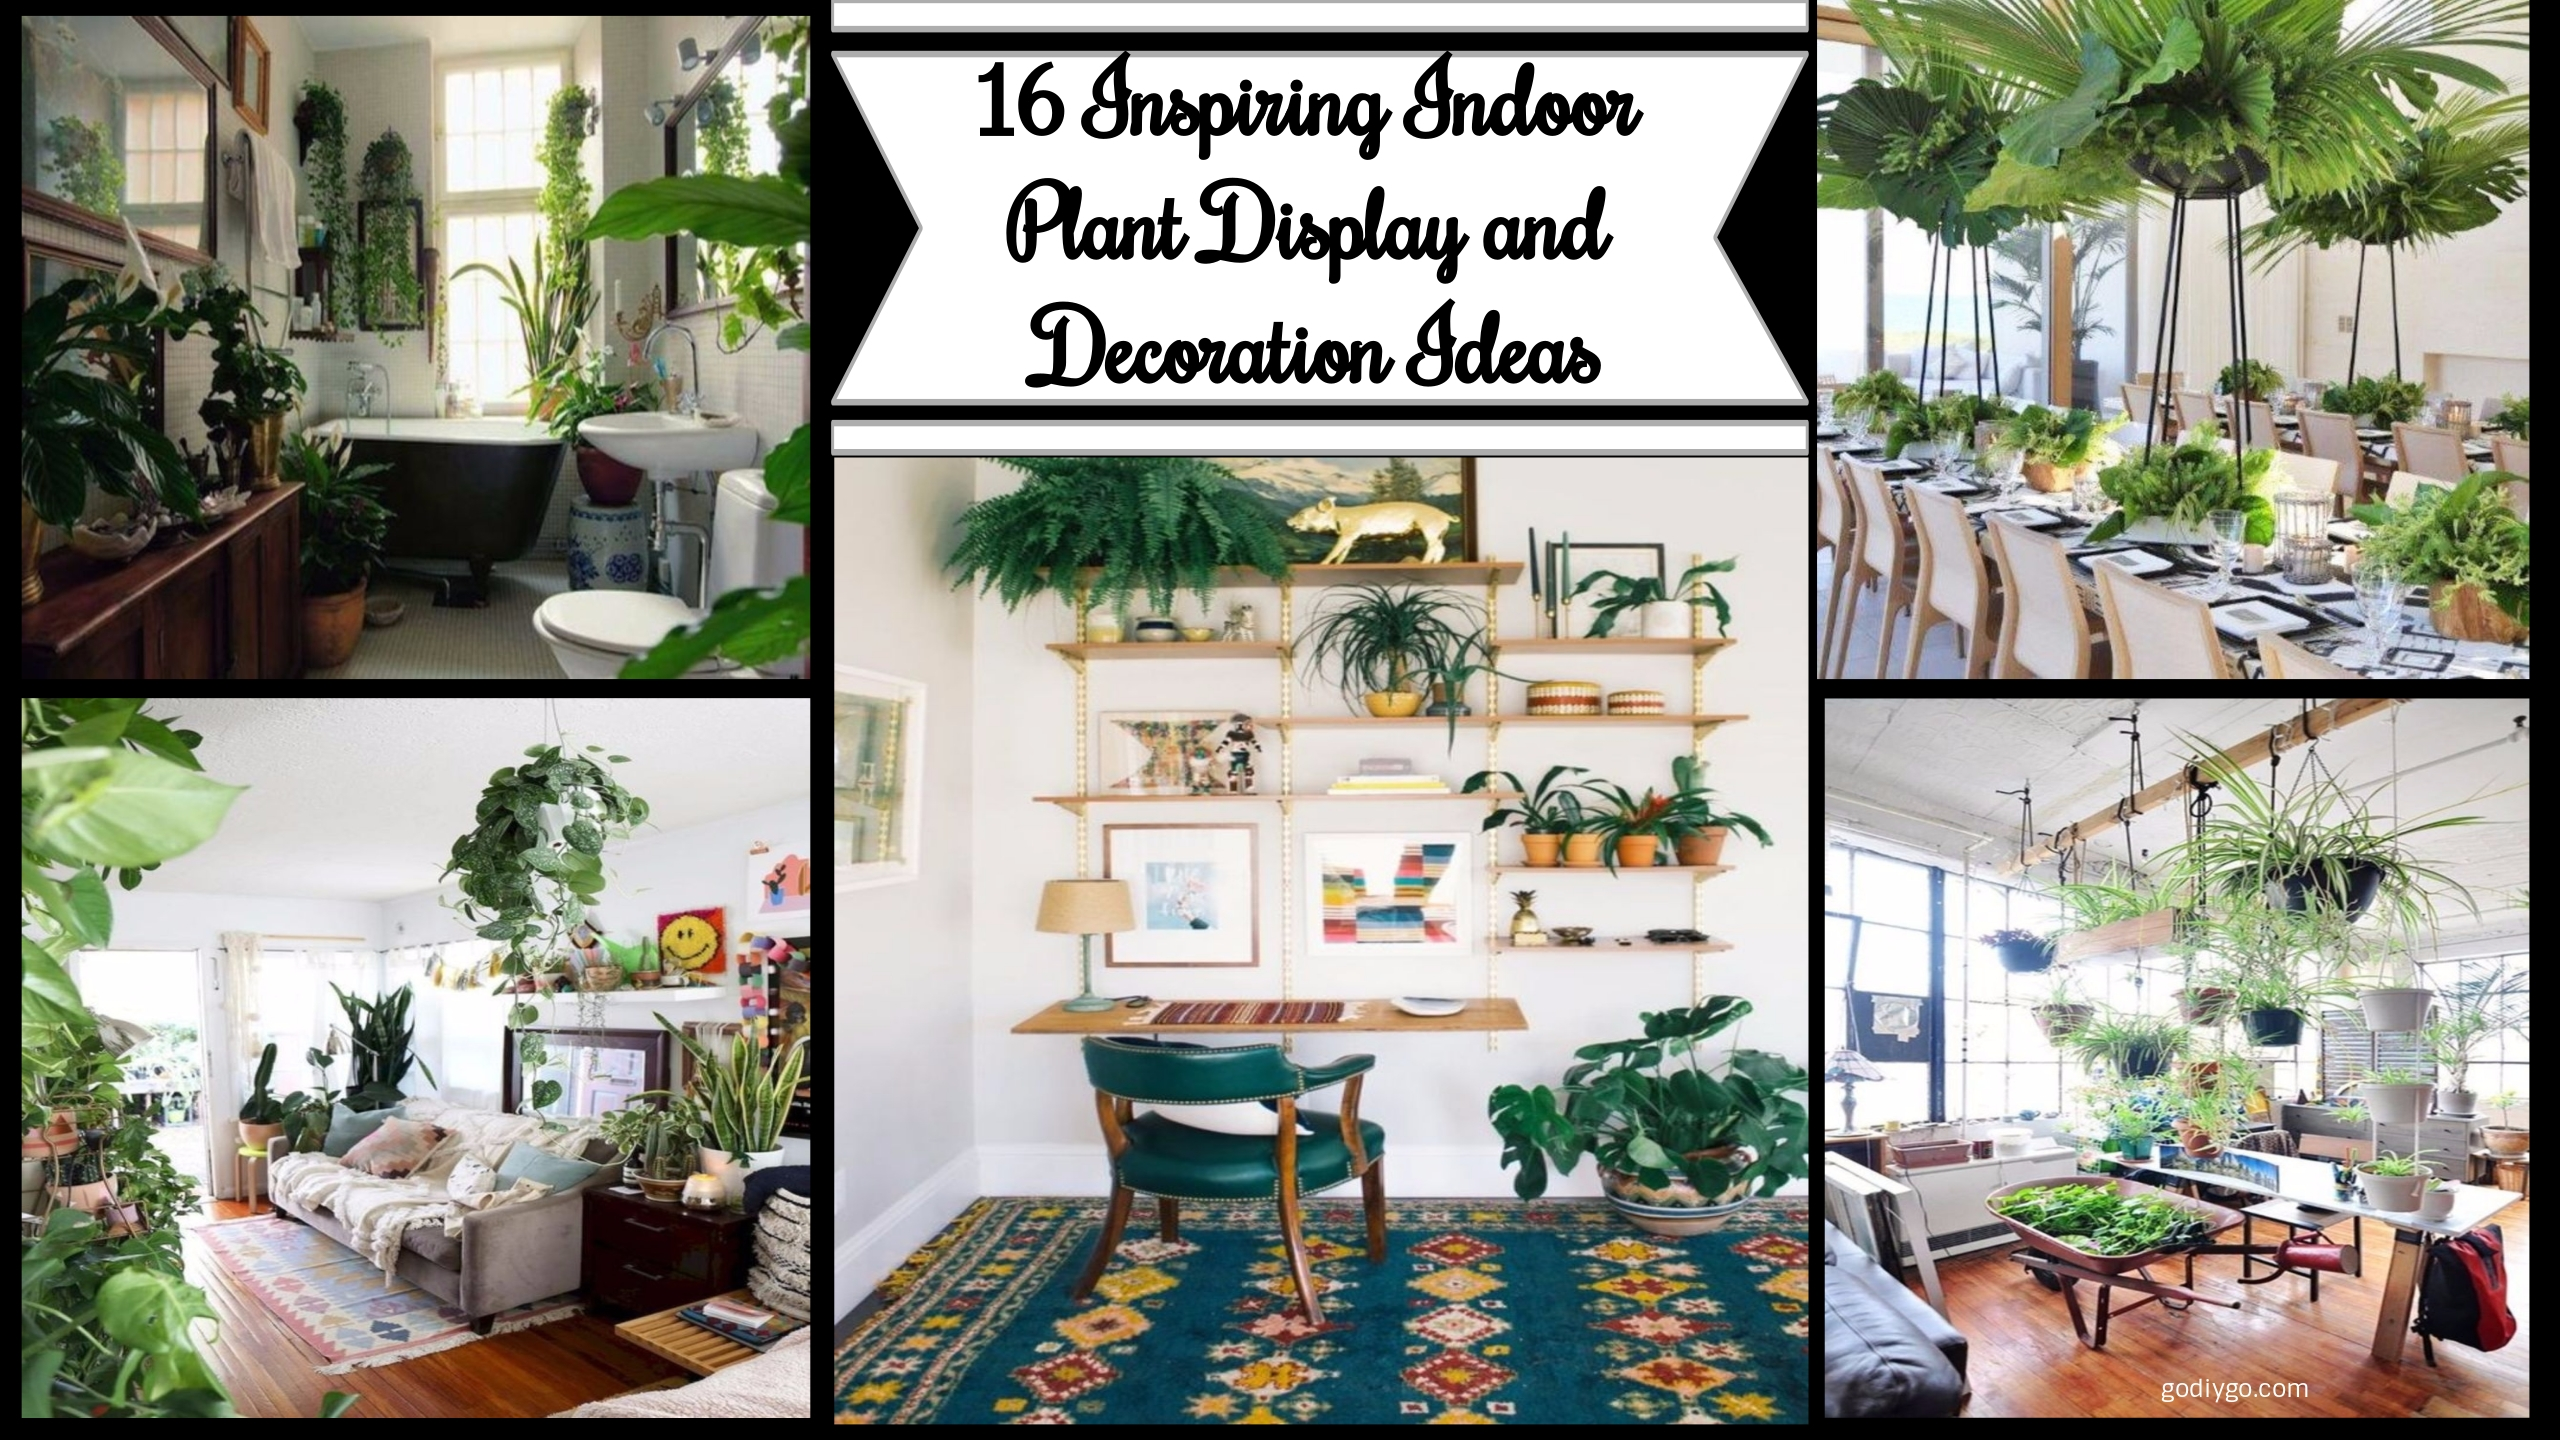 16 Inspiring Indoor Plant Display And Decoration Ideas